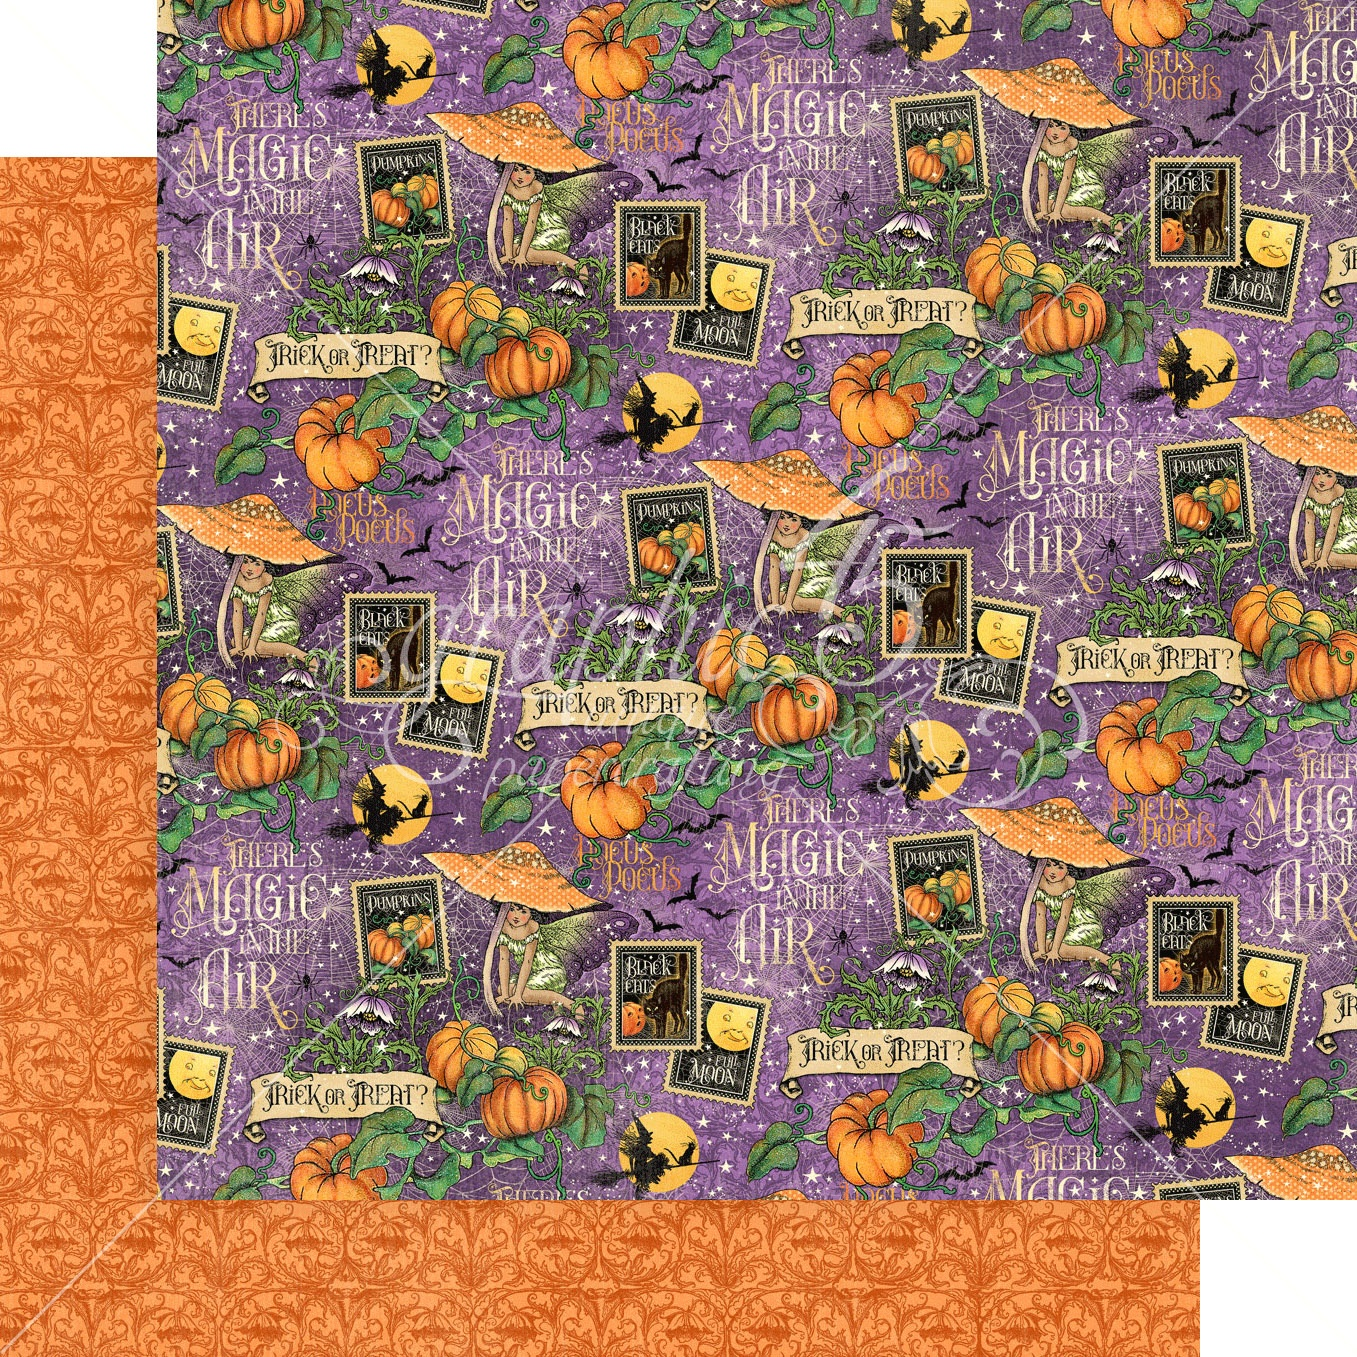 Graphic 45 - Midnight Tales Double-Sided Cardstock - Hocus Pocus 12x12